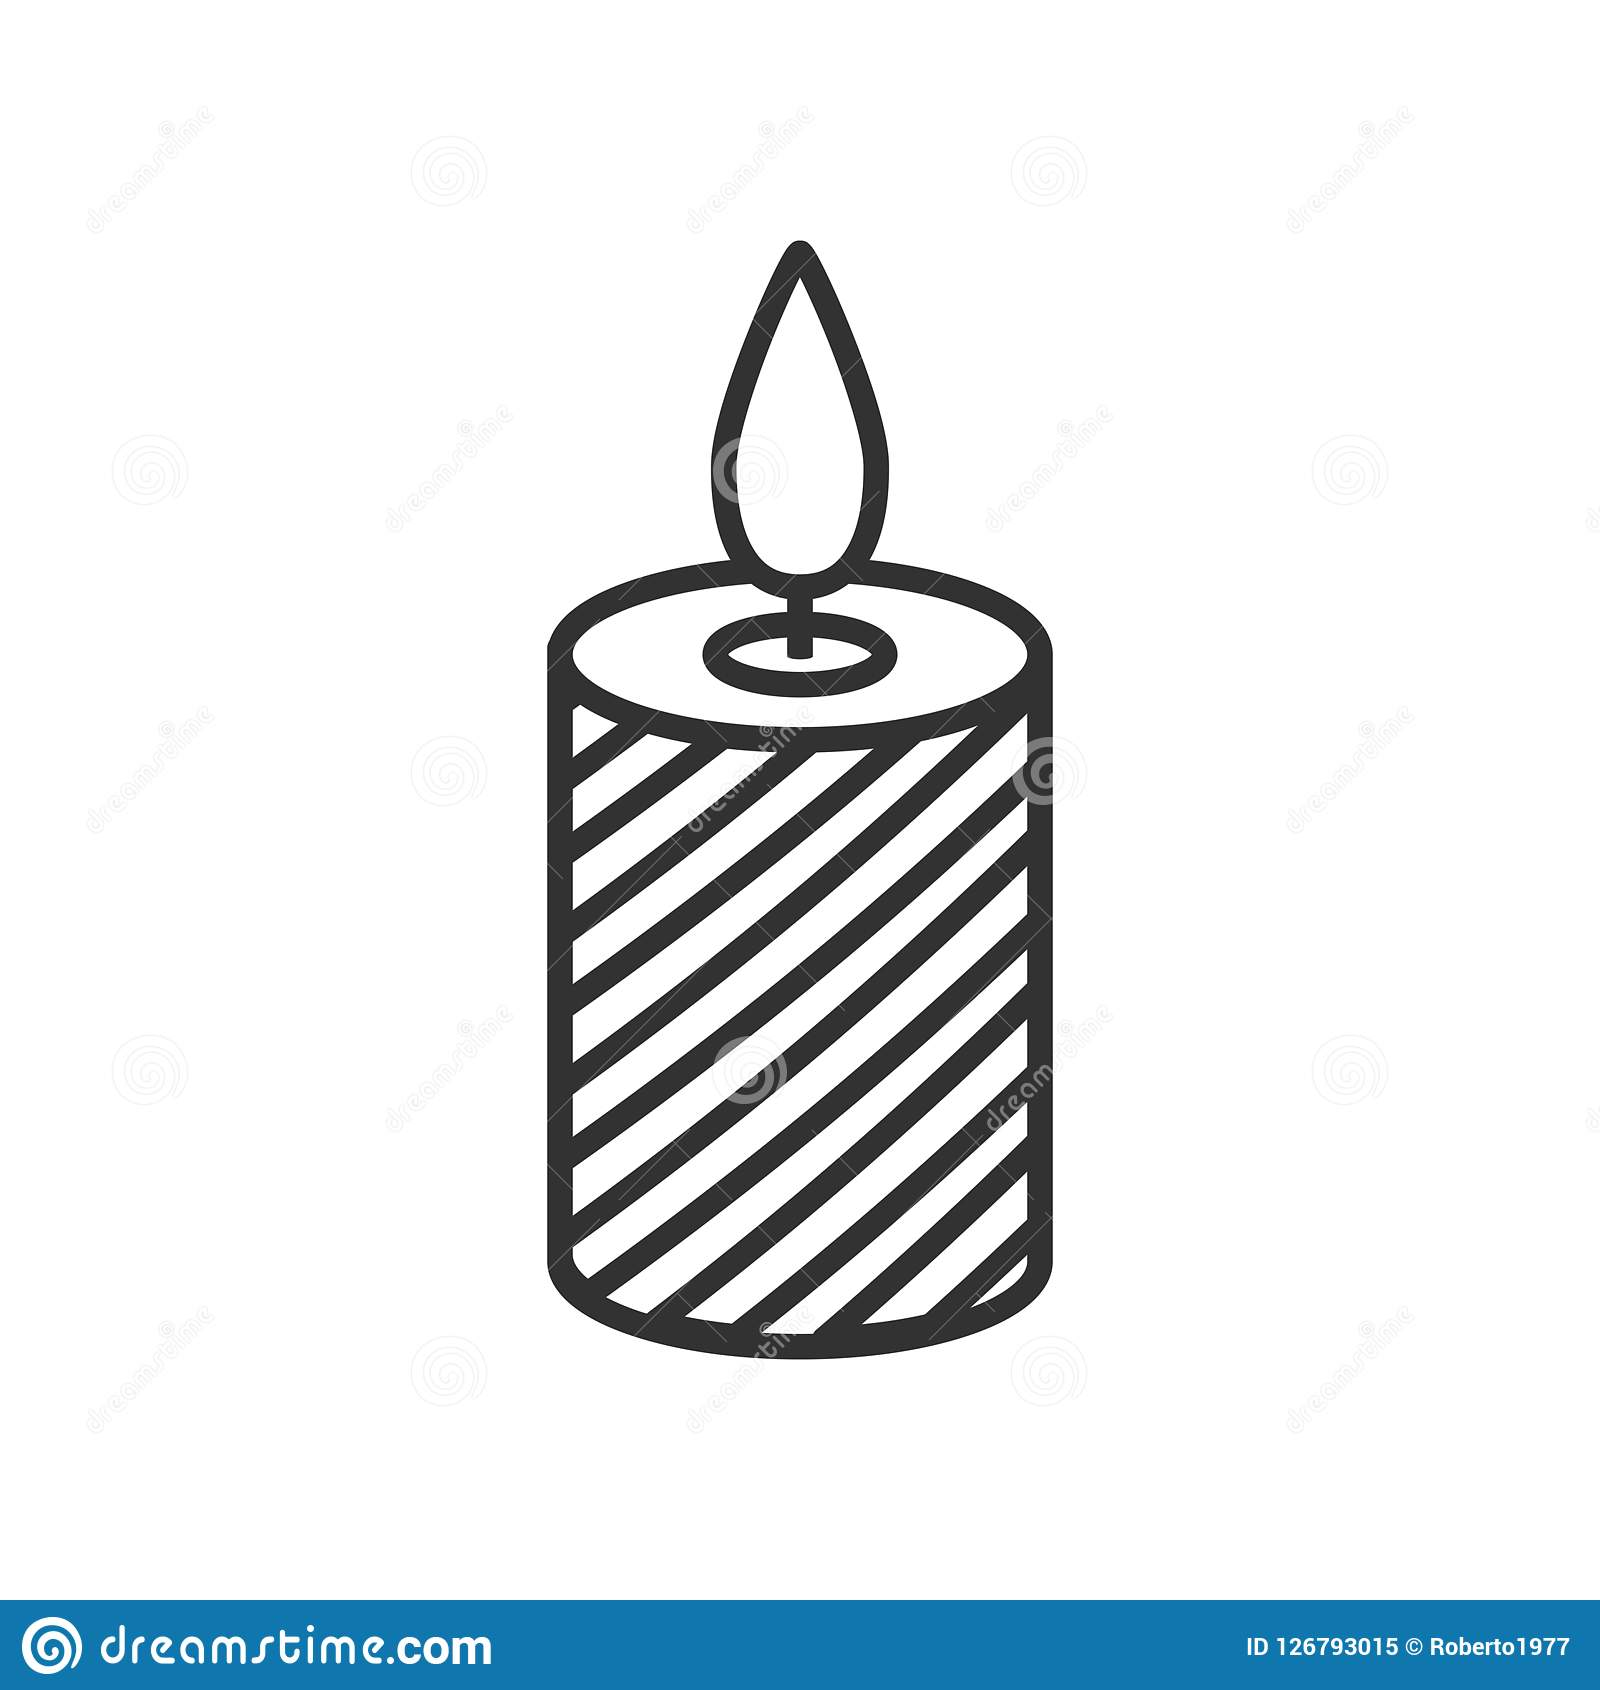 Christmas Candle Outline Flat Icon on White. Christmas candle outline flat icon, isolated on white background. Eps file available Stock Illustration